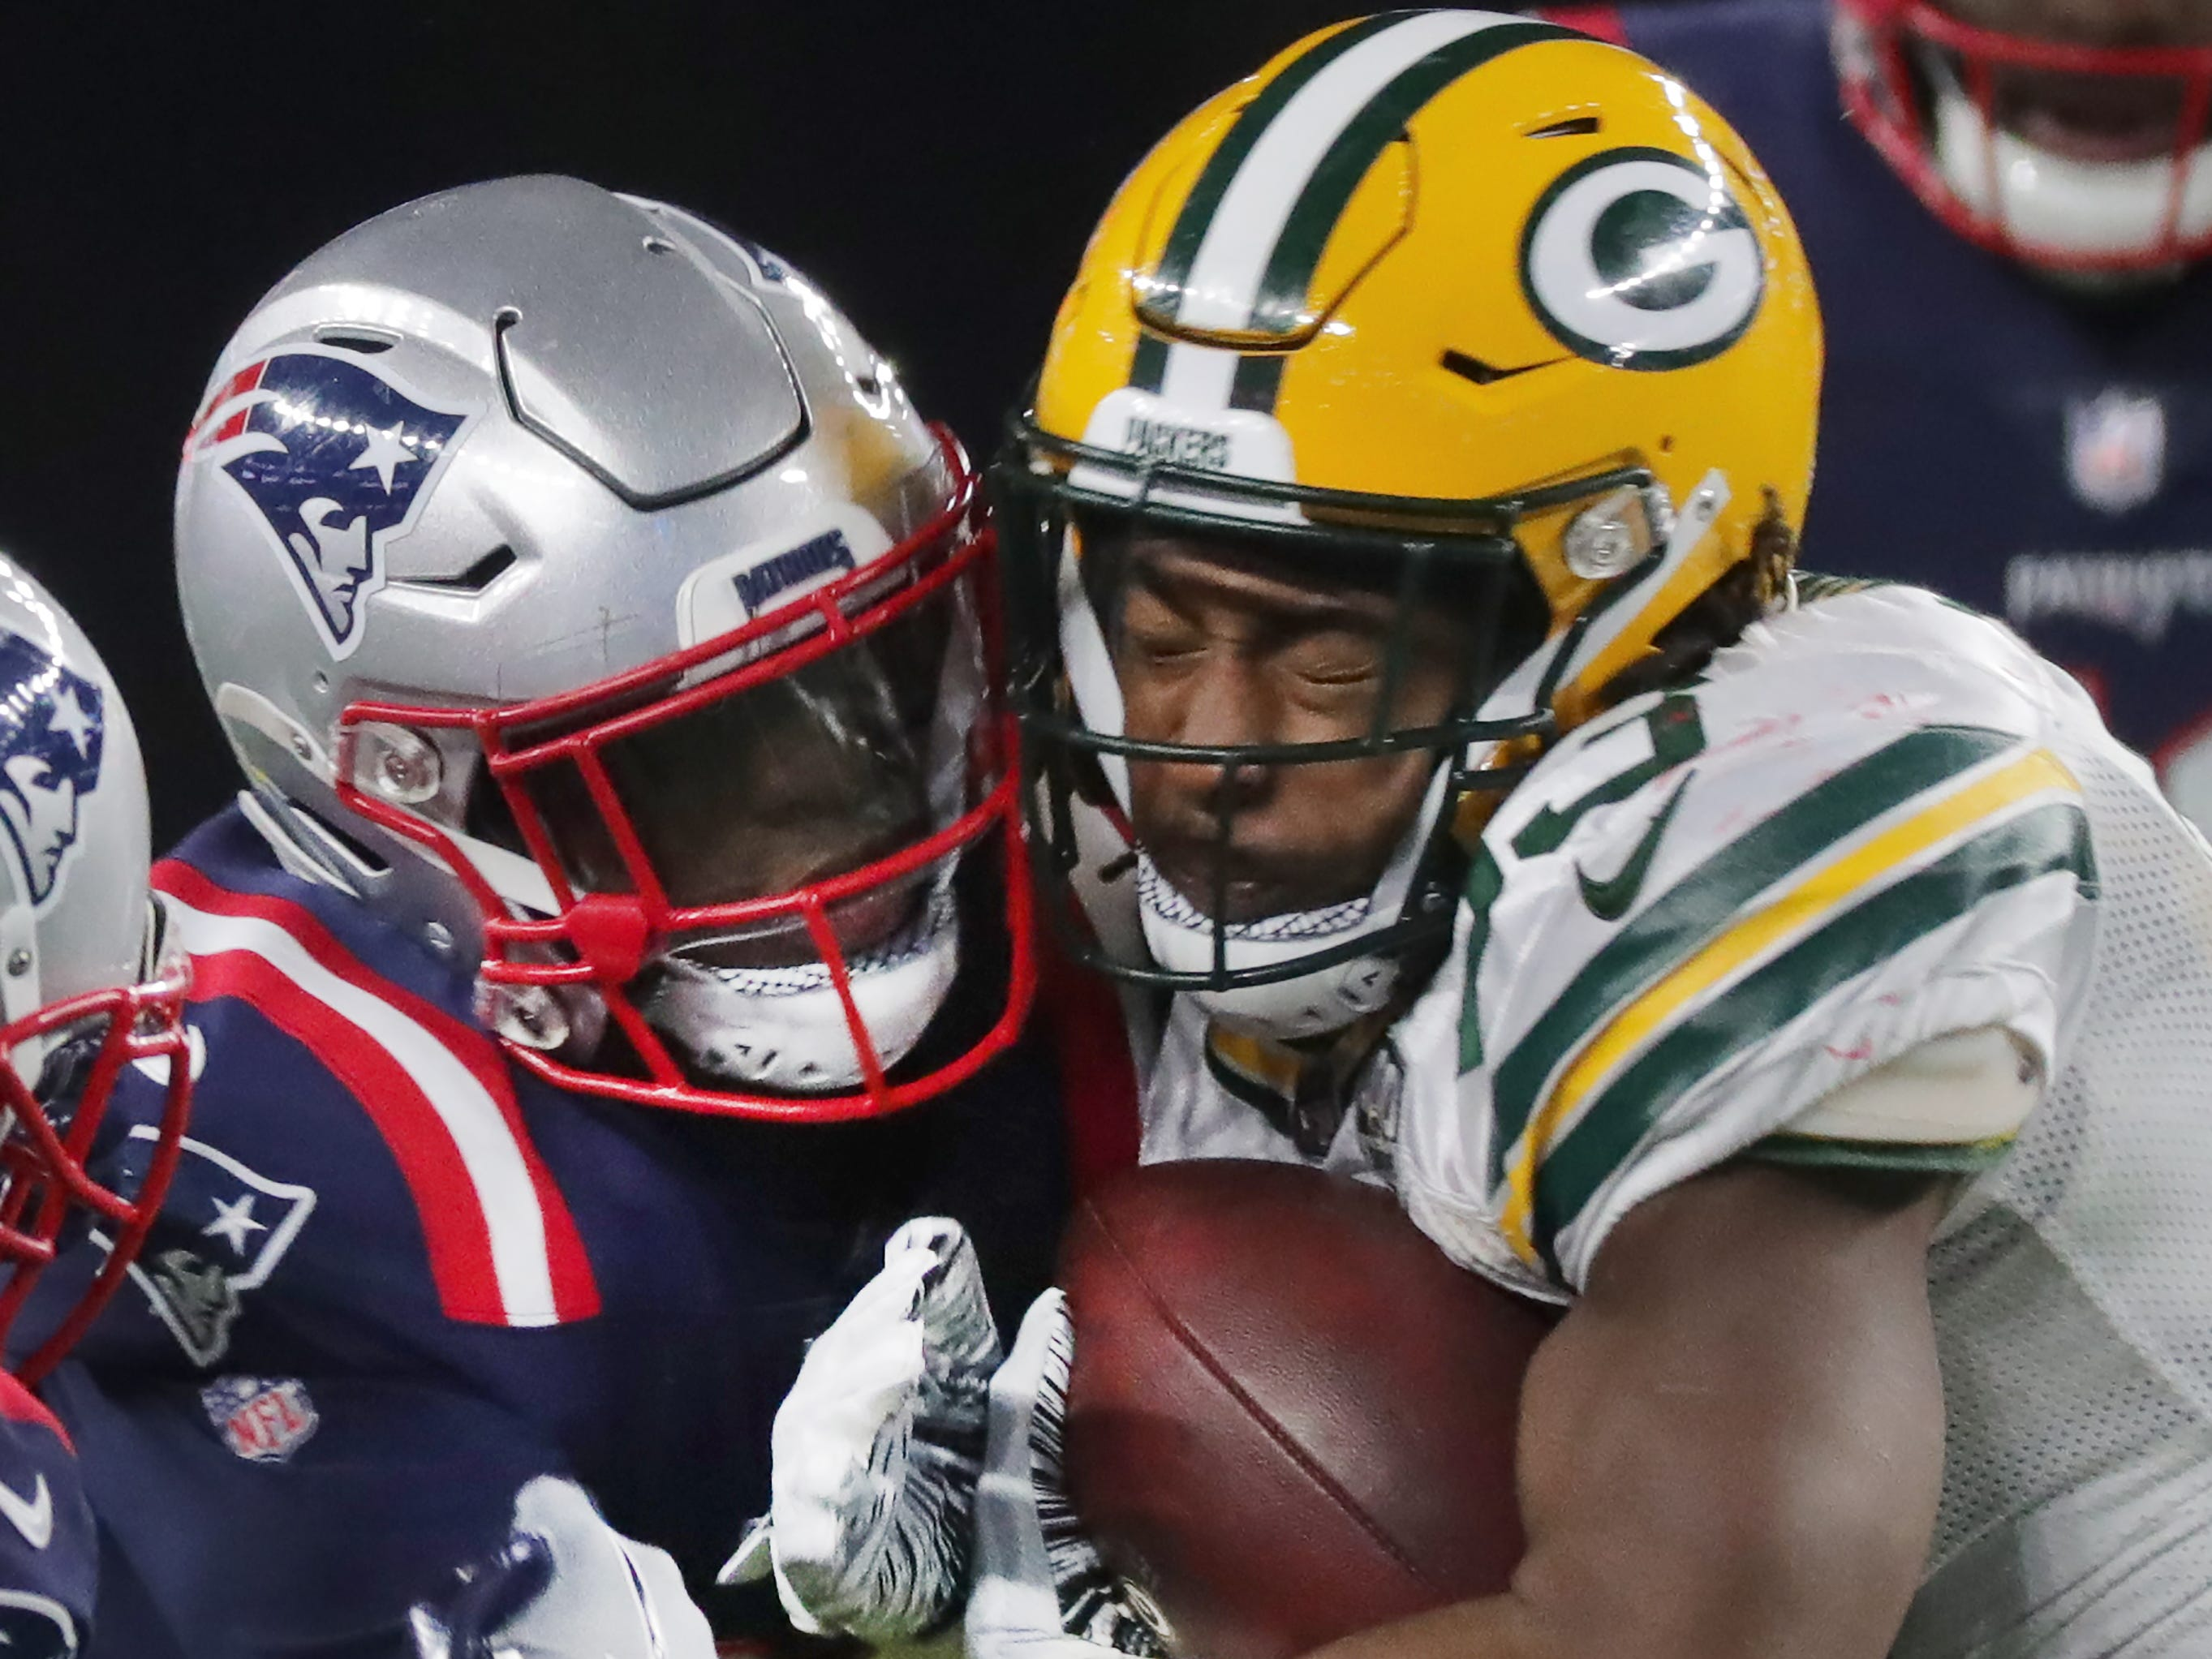 Green Bay Packers running back Aaron Jones (33) is hit by New England Patriots strong safety Duron Harmon (21) after short gain during the second quarter of their game Sunday, November 4, 2018 at Gillette Stadium in Foxborough, Mass.